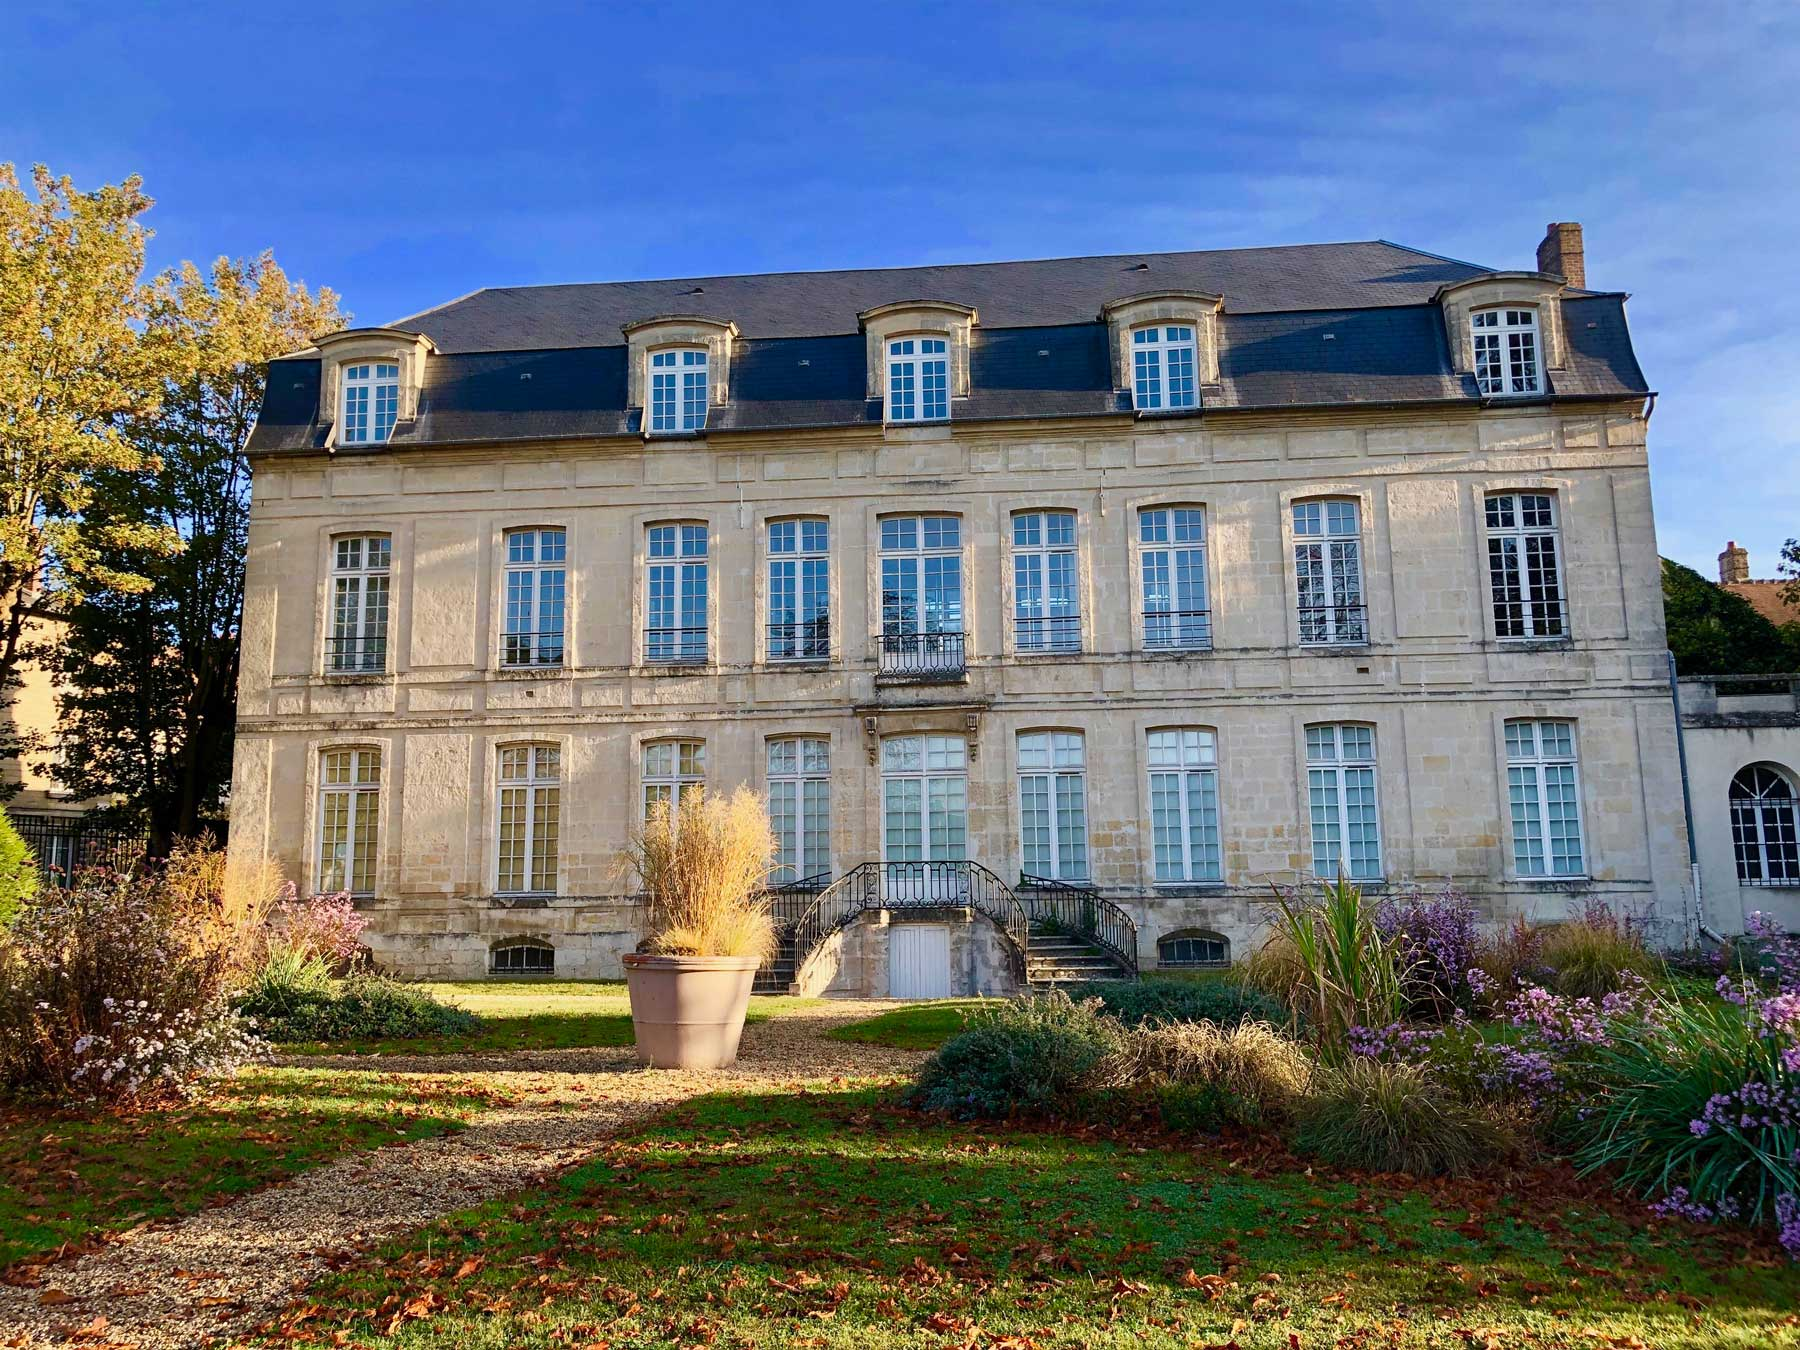 french-countryside-historic-building